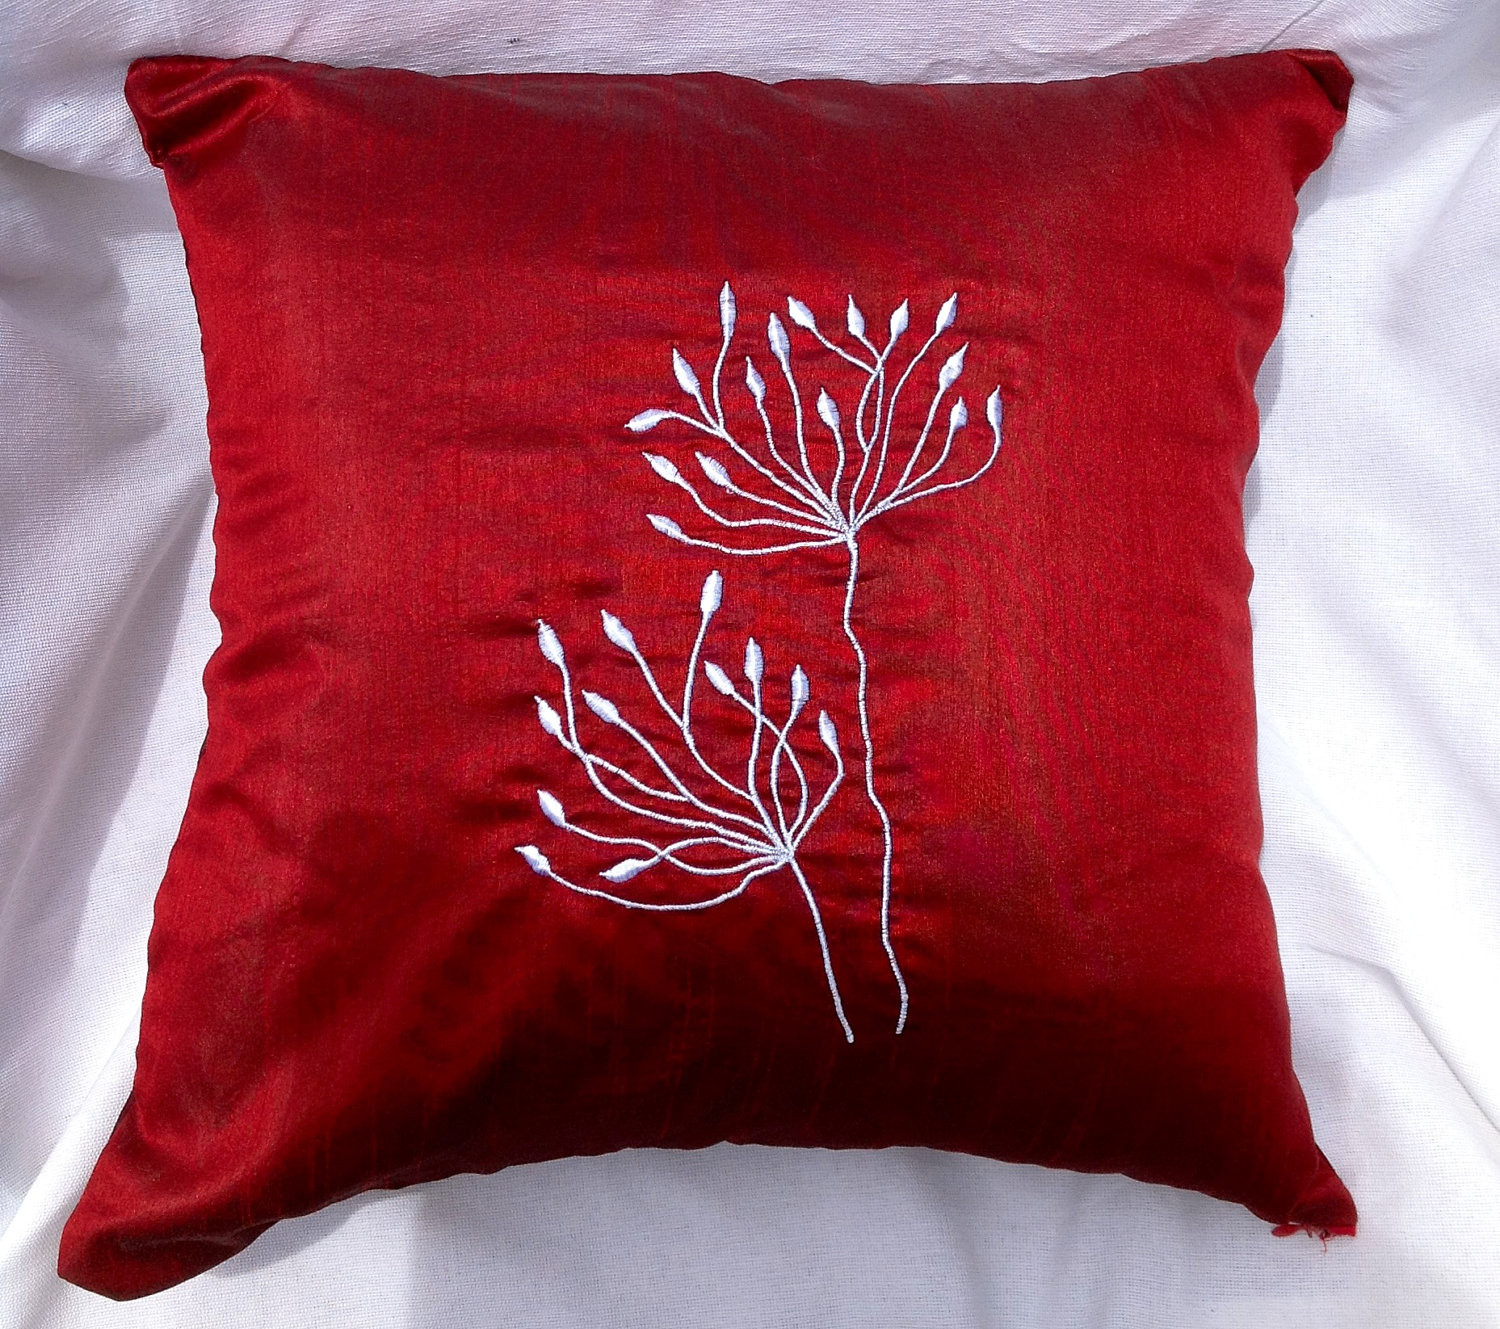 Unique Red Decorative Pillows for Couch Patterned Throw Of Amazing 40 Photos Patterned Throw